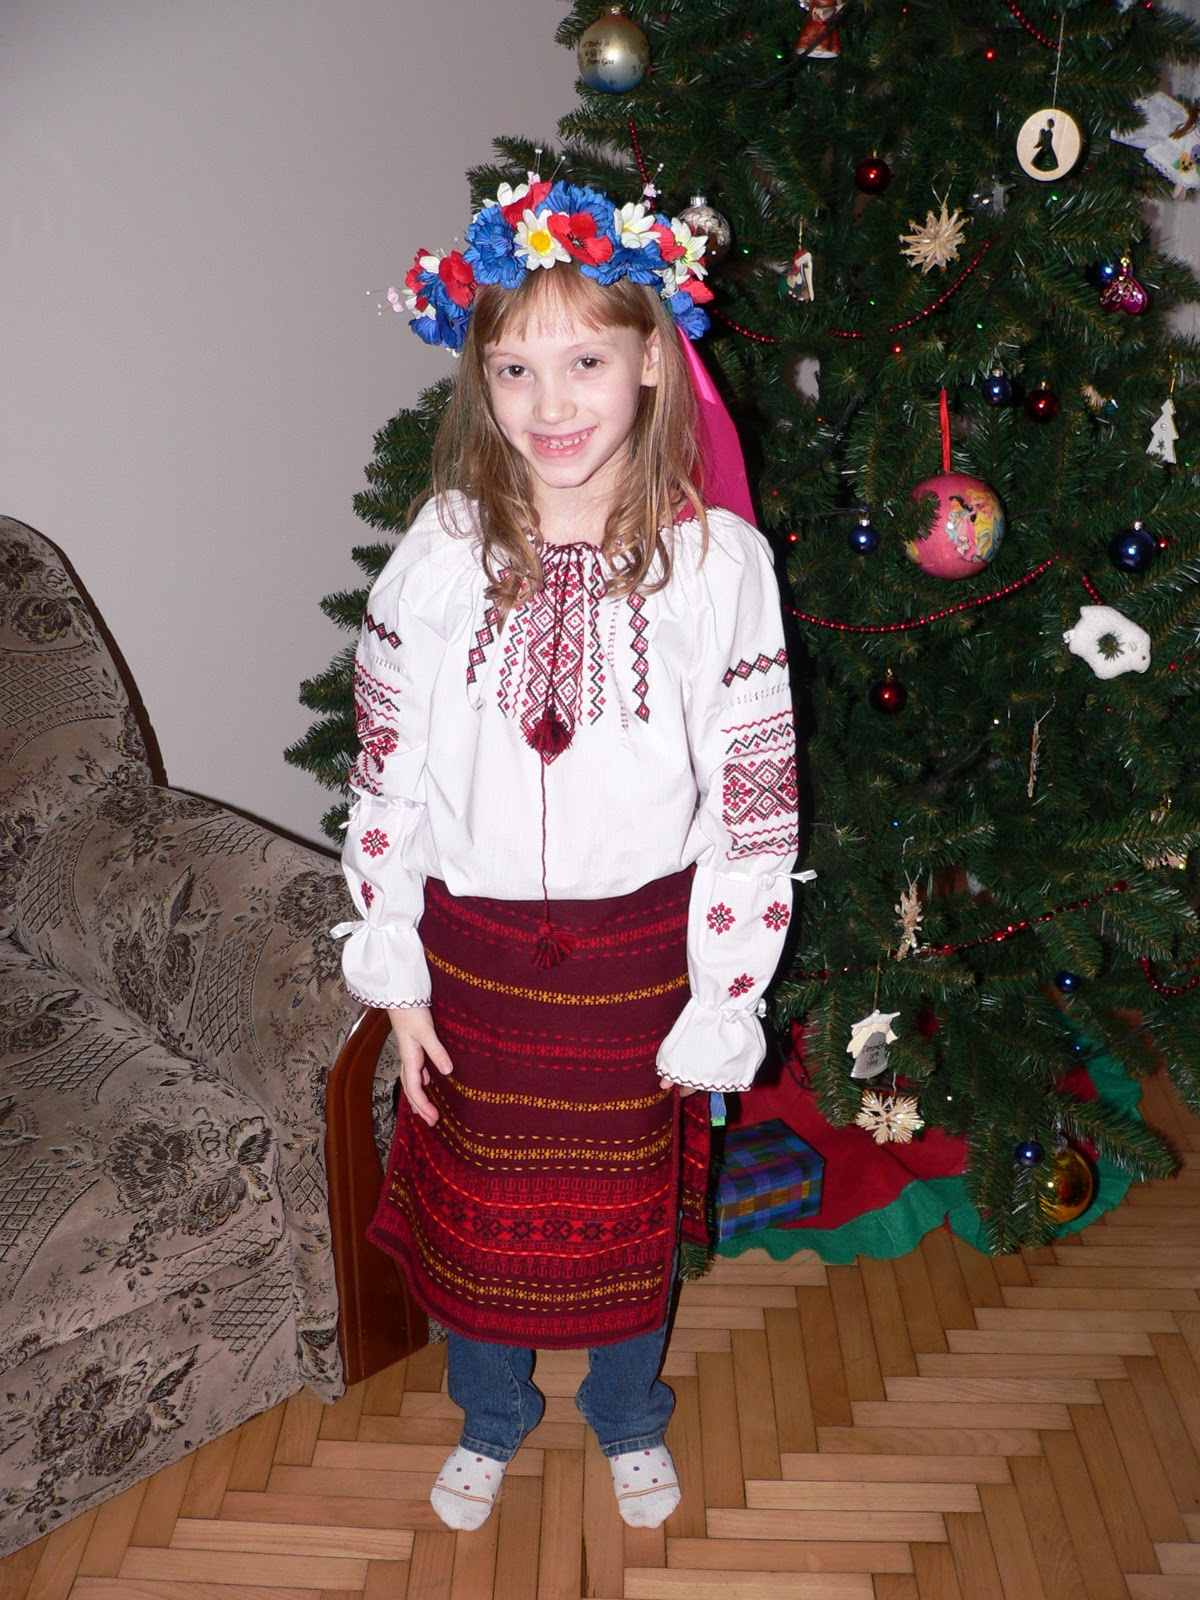 Christmas tree dress up images - It Is Common For People To Dress Up For New Years Or Where Costumes Our Kids Are Very Happy About This Since They Don T Have Halloween Not A Ukrainian